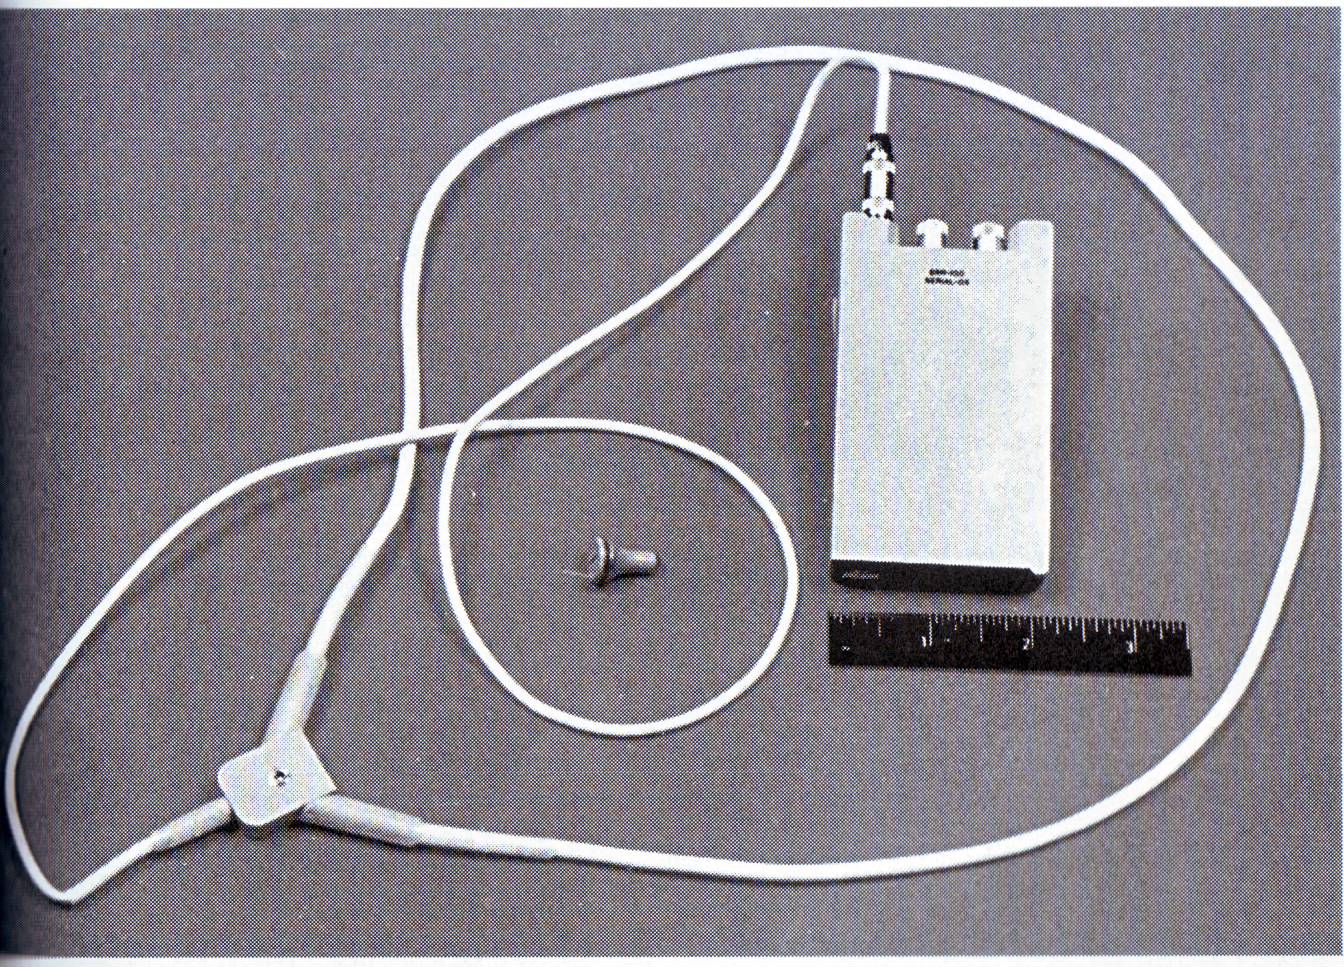 Radio receiver for scanning KGB communications that Martha Peterson wore on her belt when was arrested